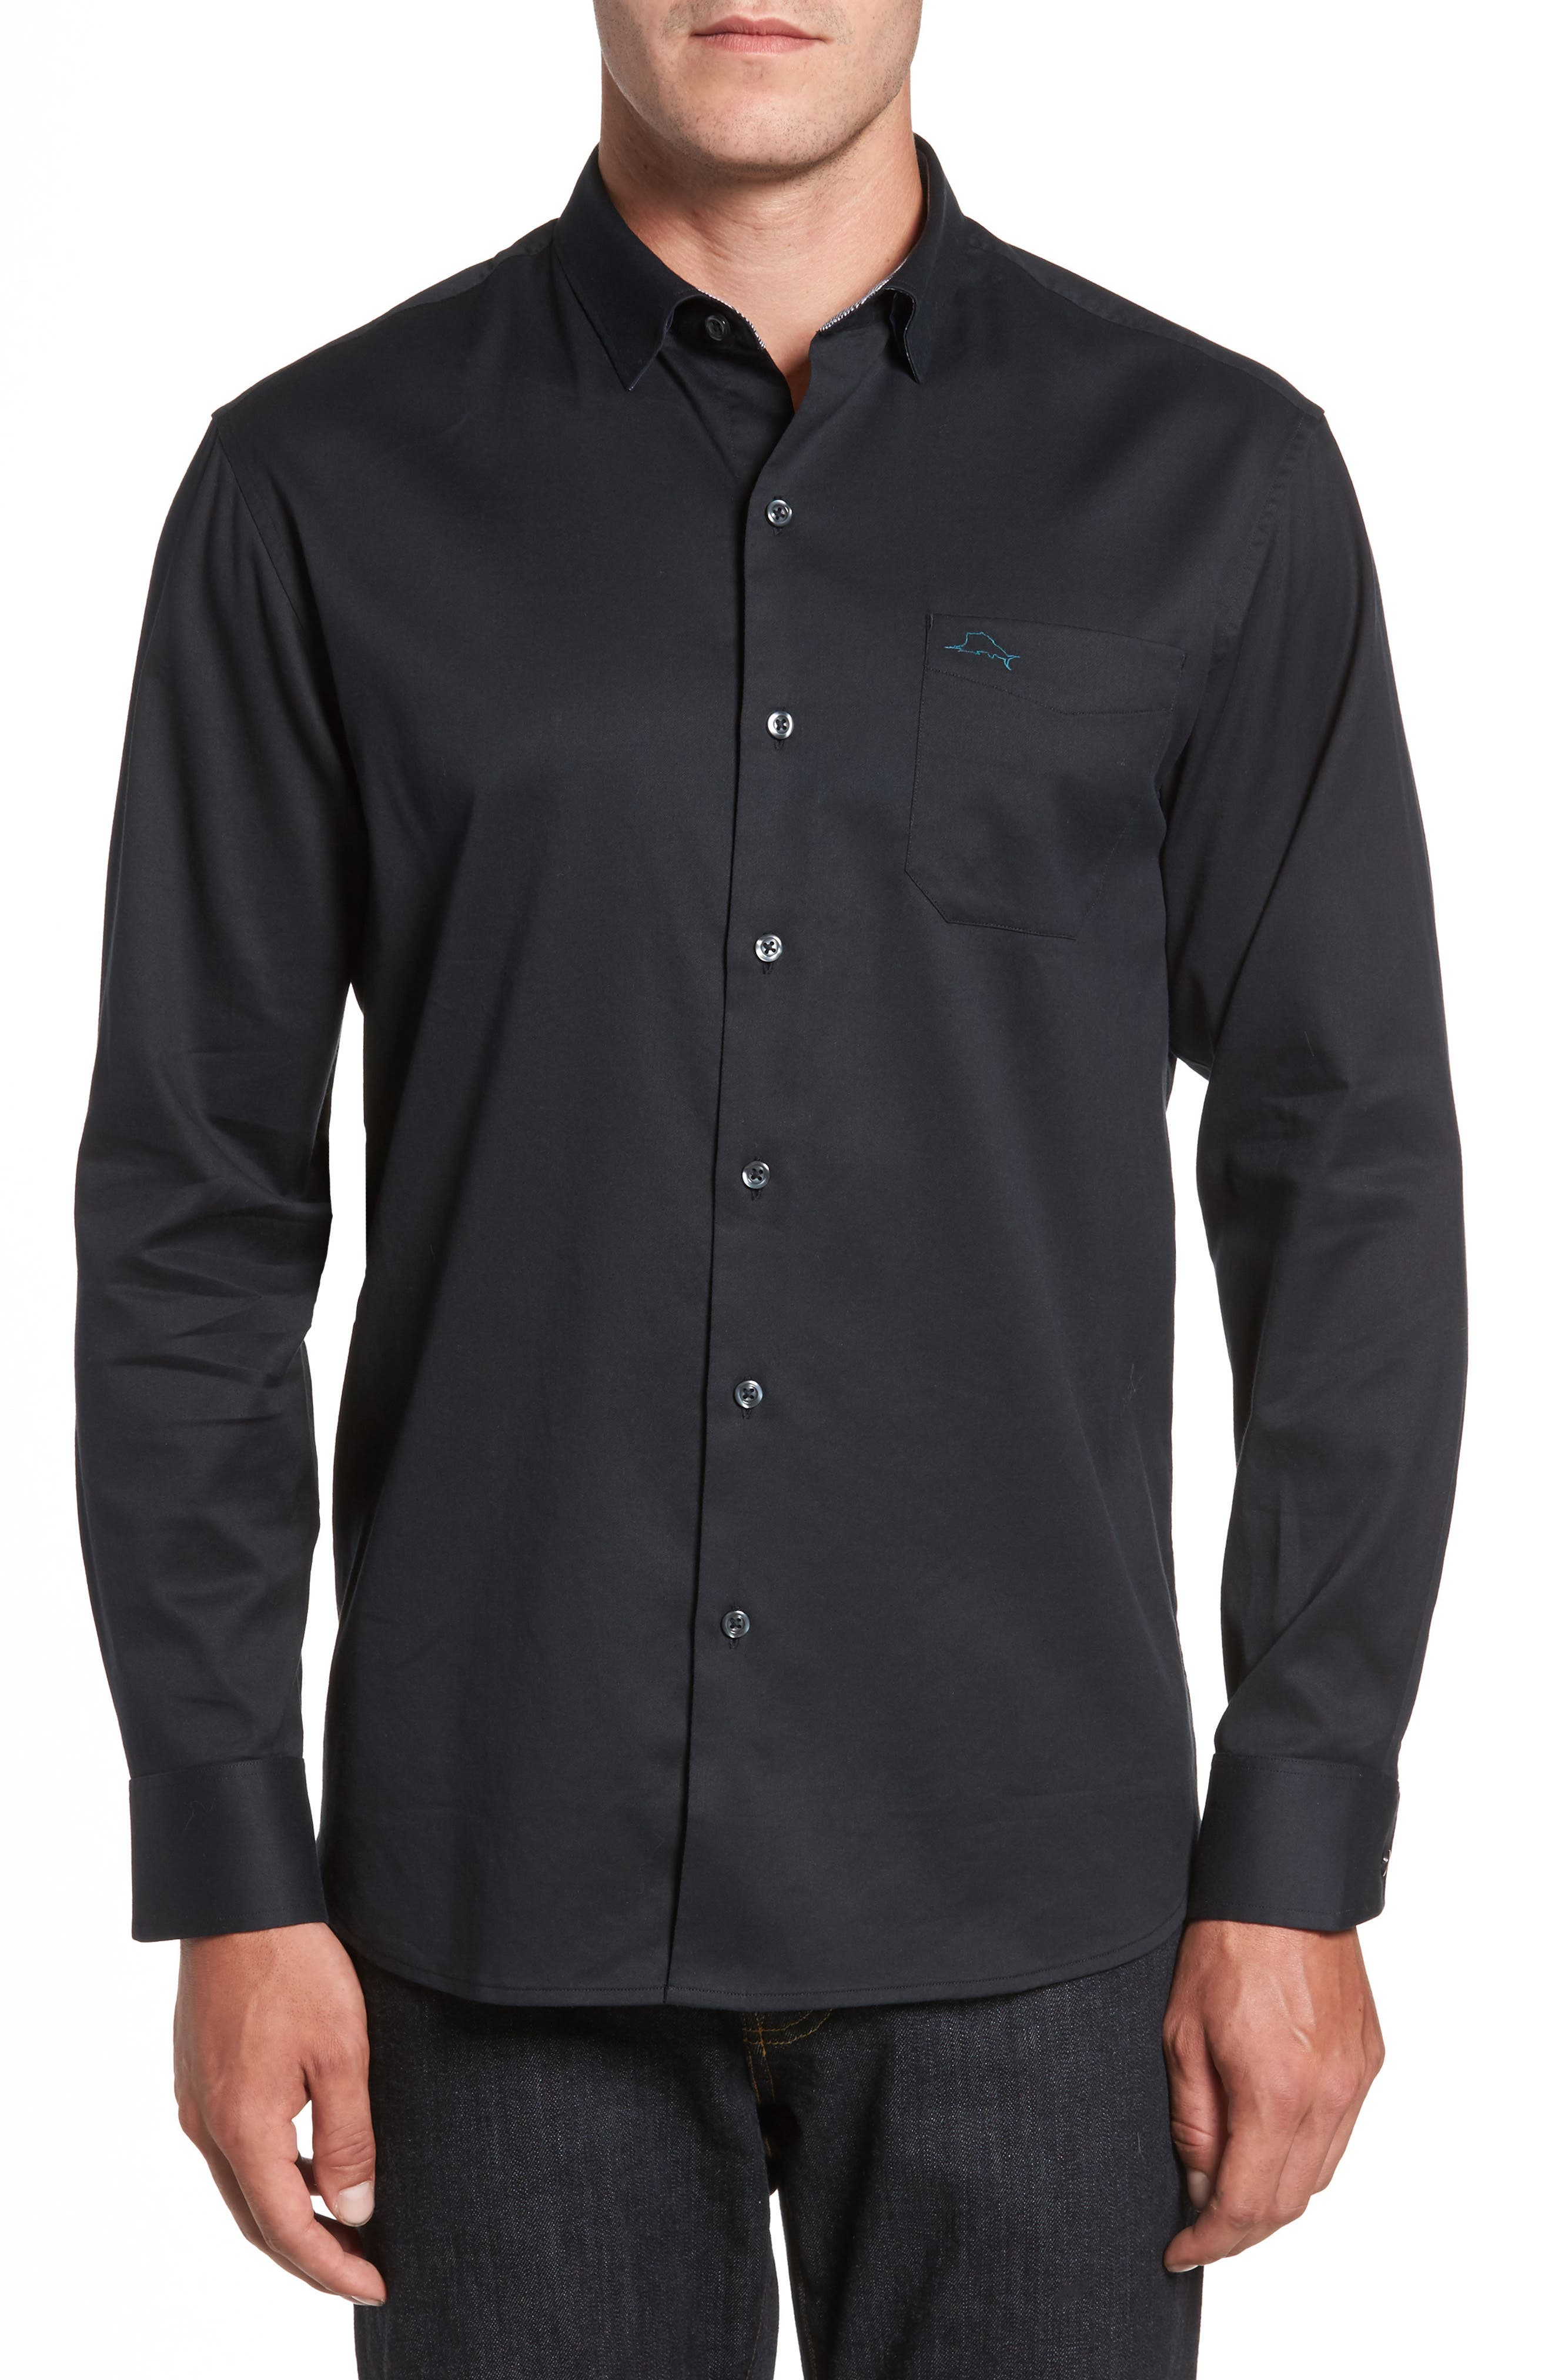 TOMMY BAHAMA Oasis Twill Sport Shirt, Main, color, 001